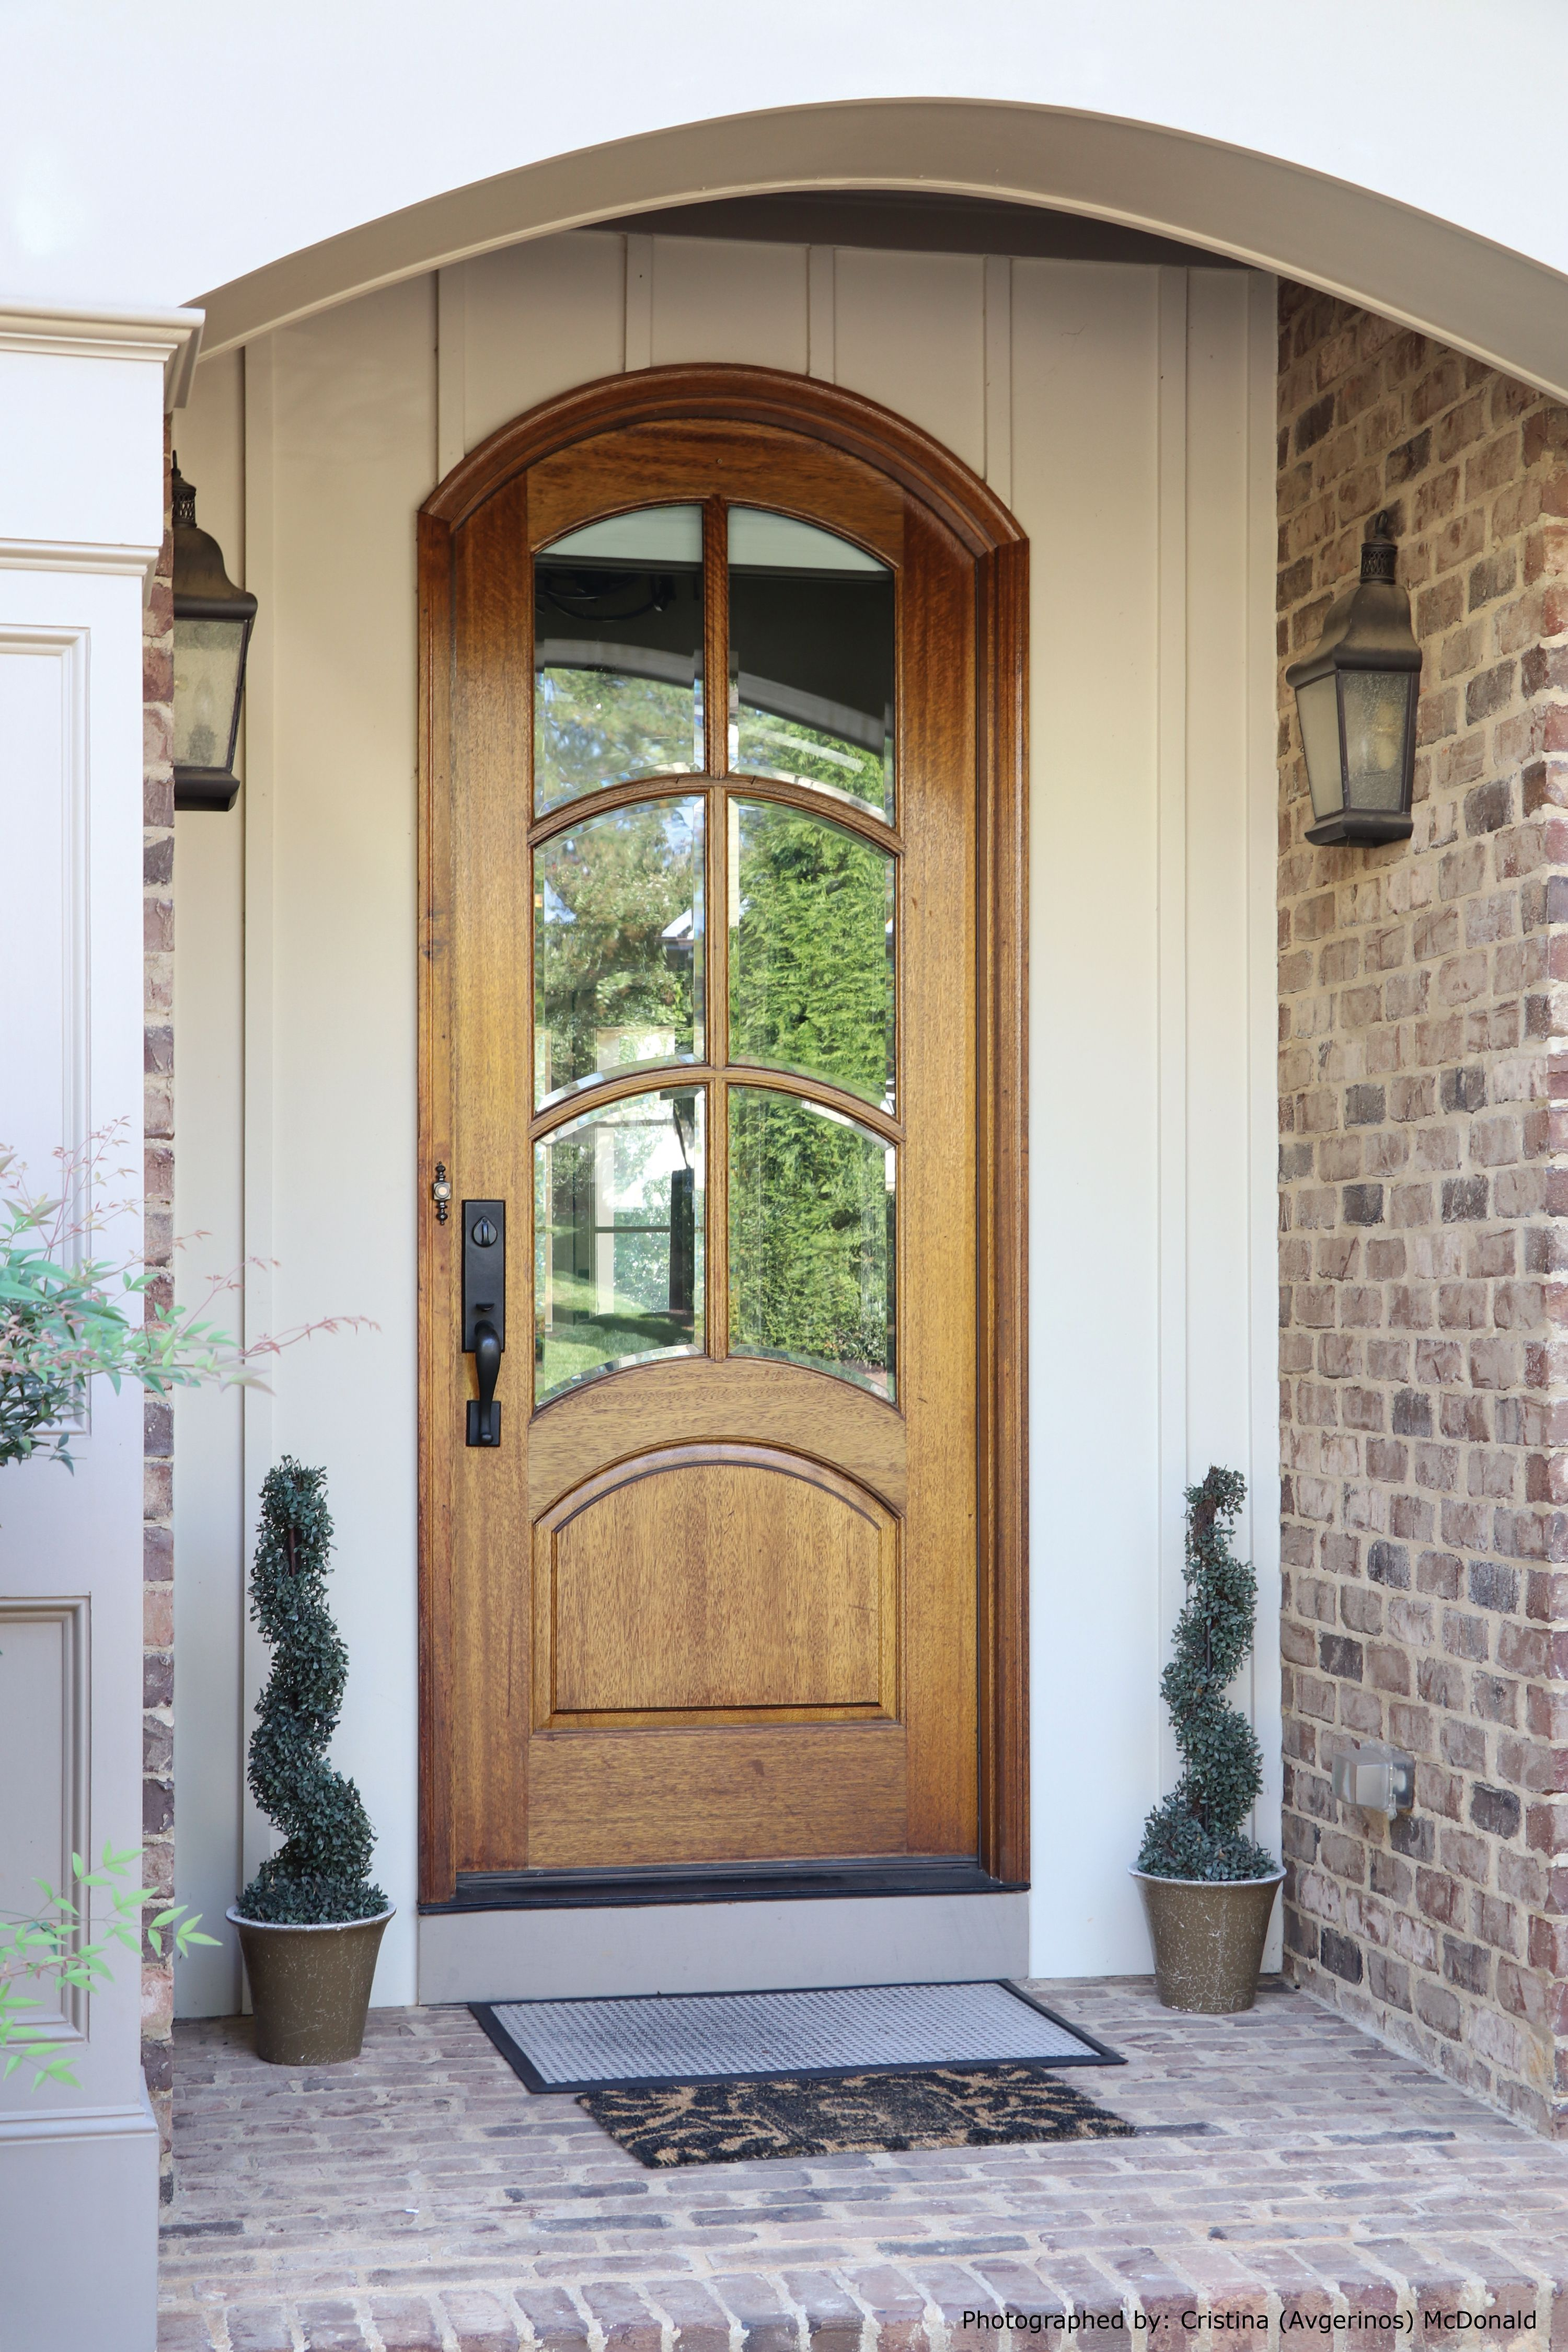 Aberdeen Tdl 6lt 8 0 Single Arched Top Door Clear Beveled Glass Photographed By Cristina Avgeri Custom Front Doors Arched Exterior Doors Single Entry Doors